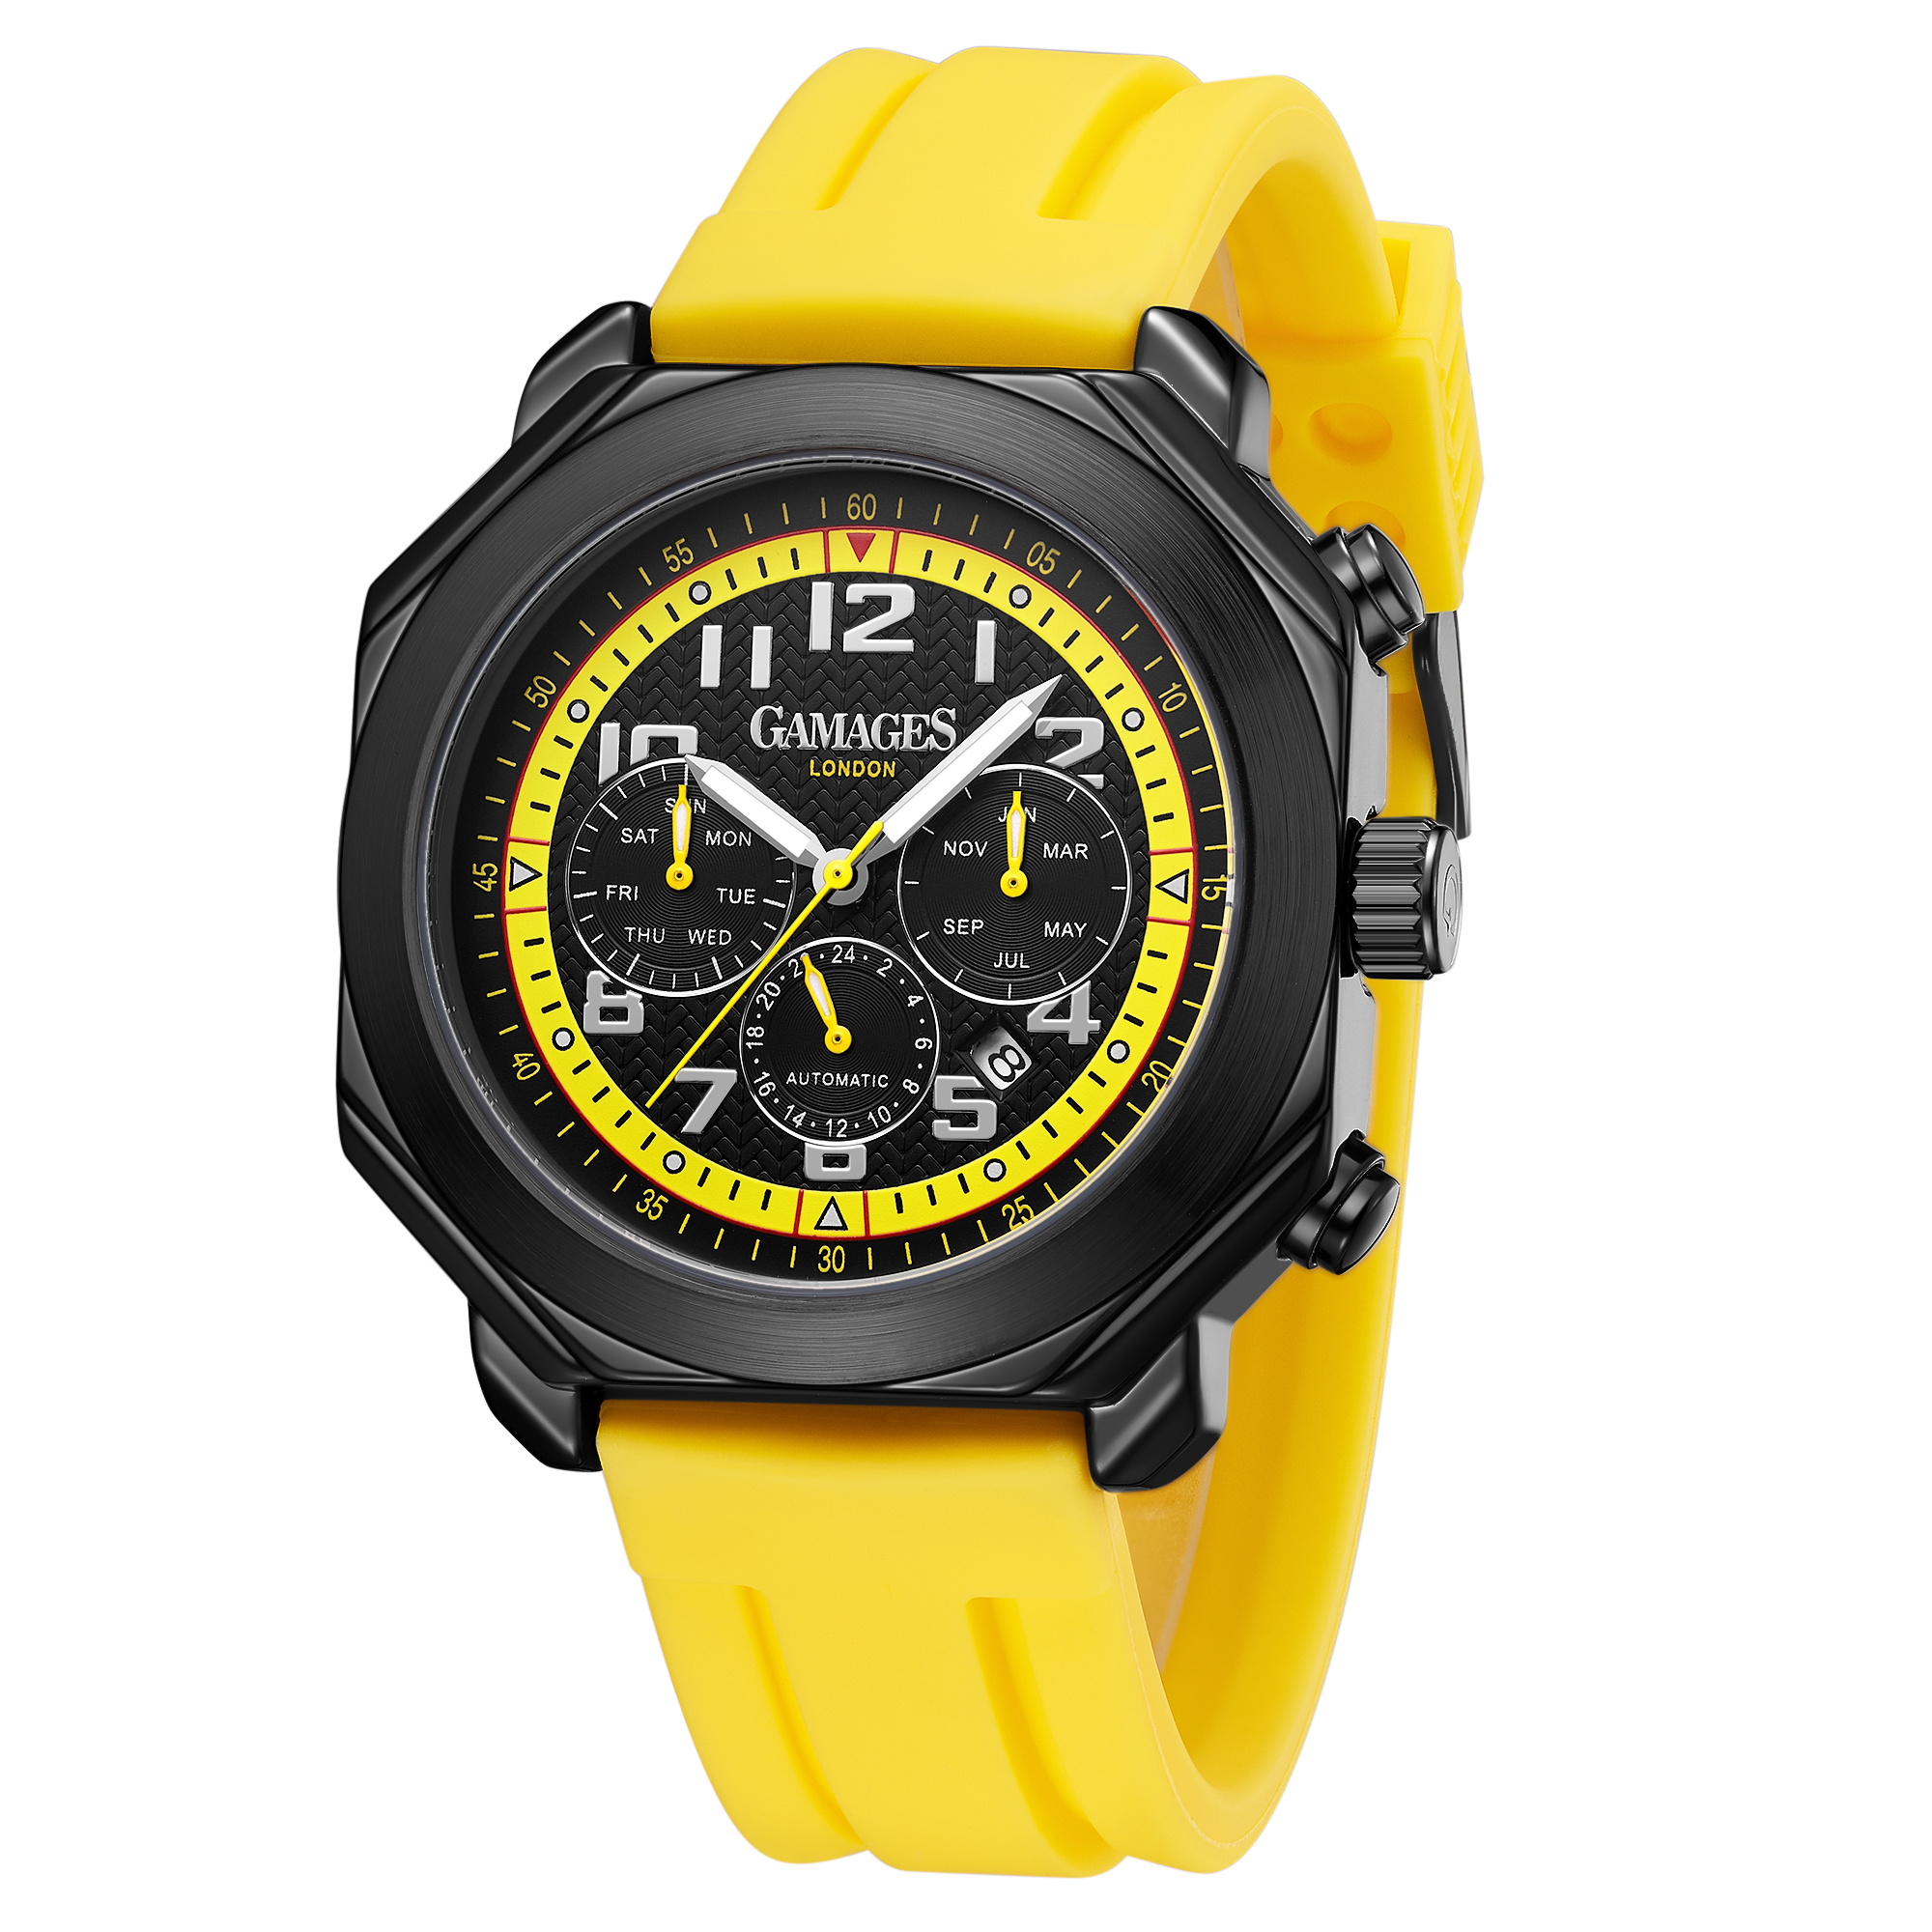 Ltd Edition Hand Assembled Gamages Contemporary Automatic Yellow – 5 Year Warranty & Free Delivery - Image 5 of 5